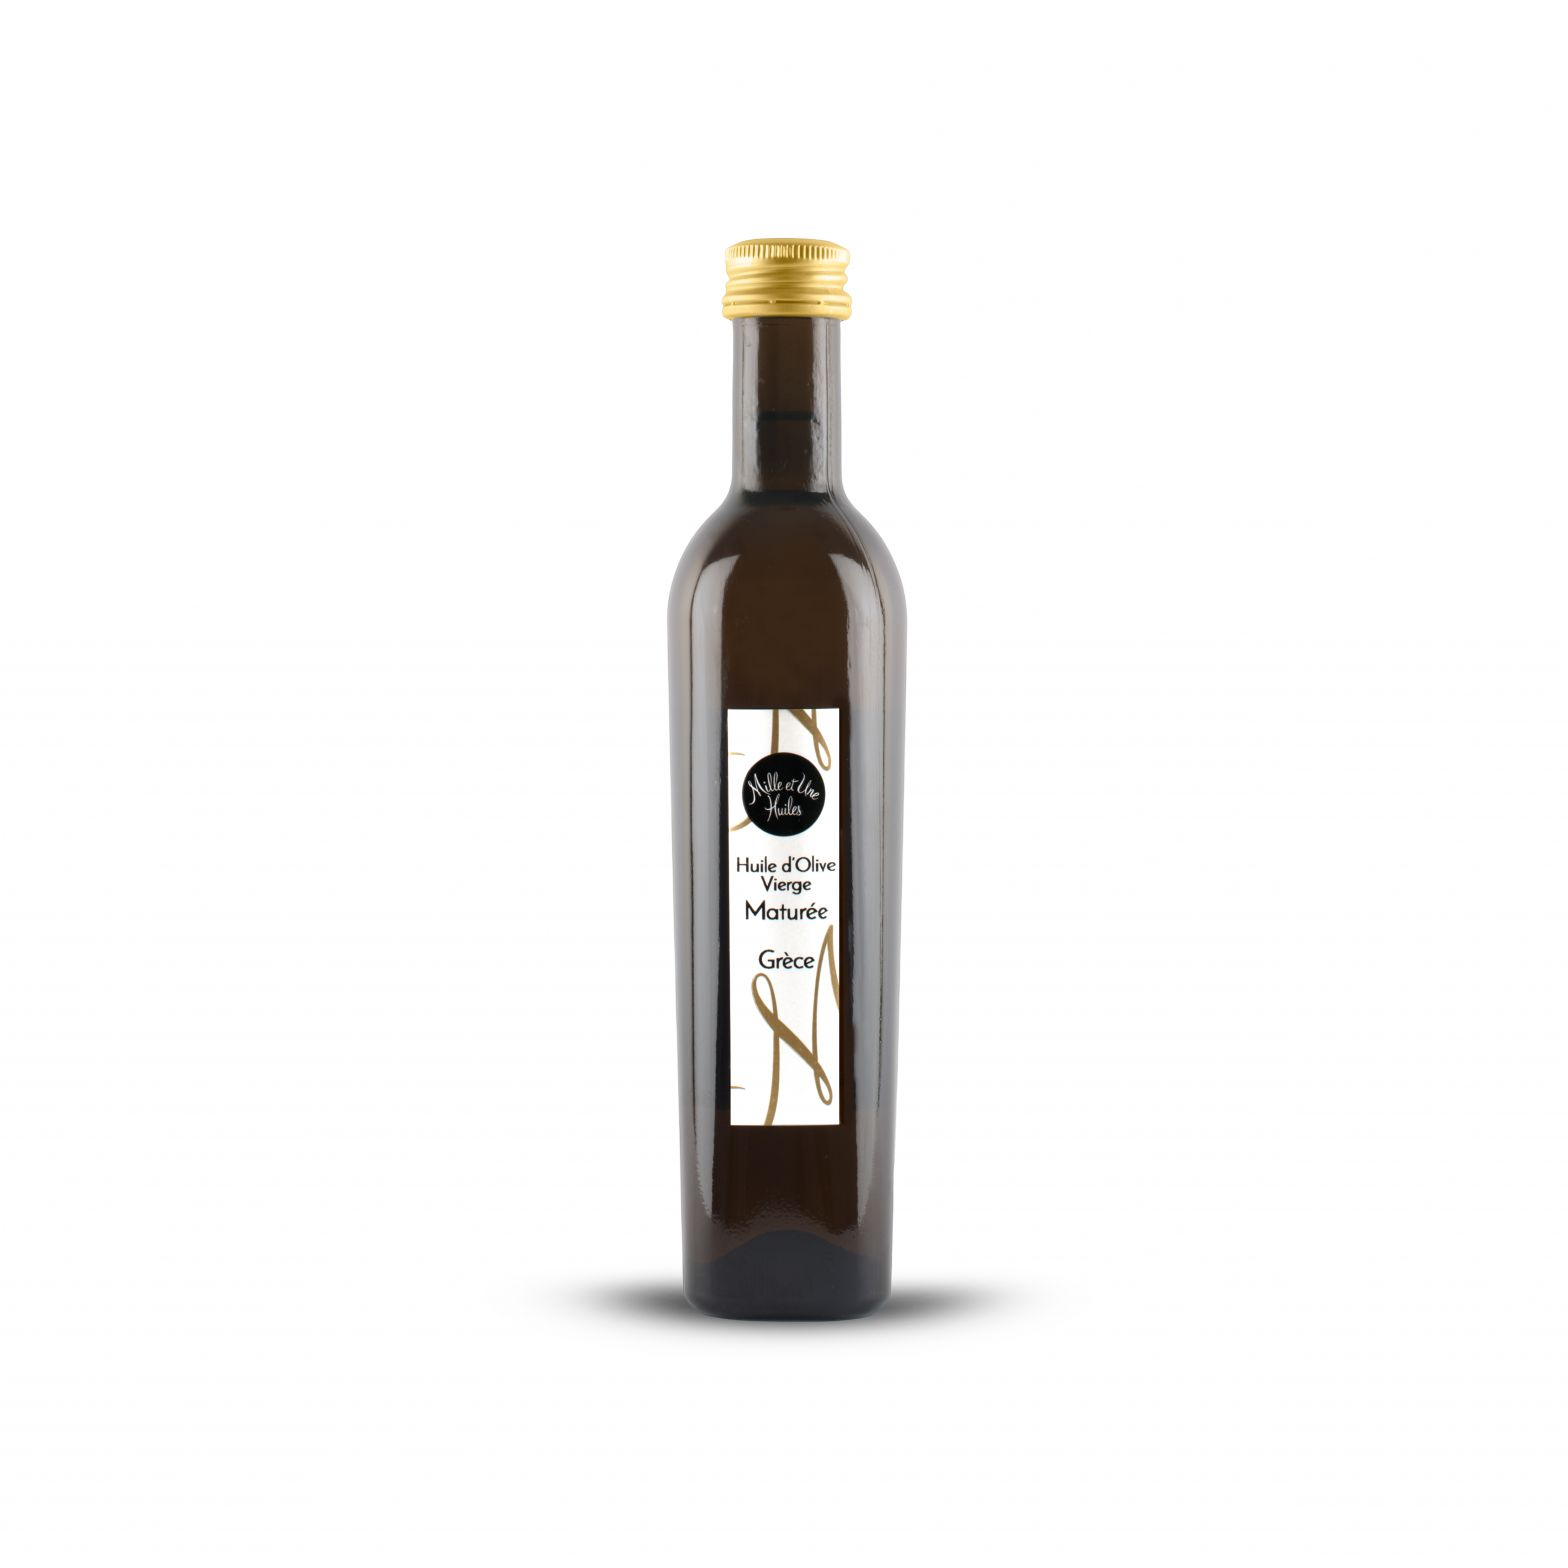 Virgin olive oil matured selection, Greece